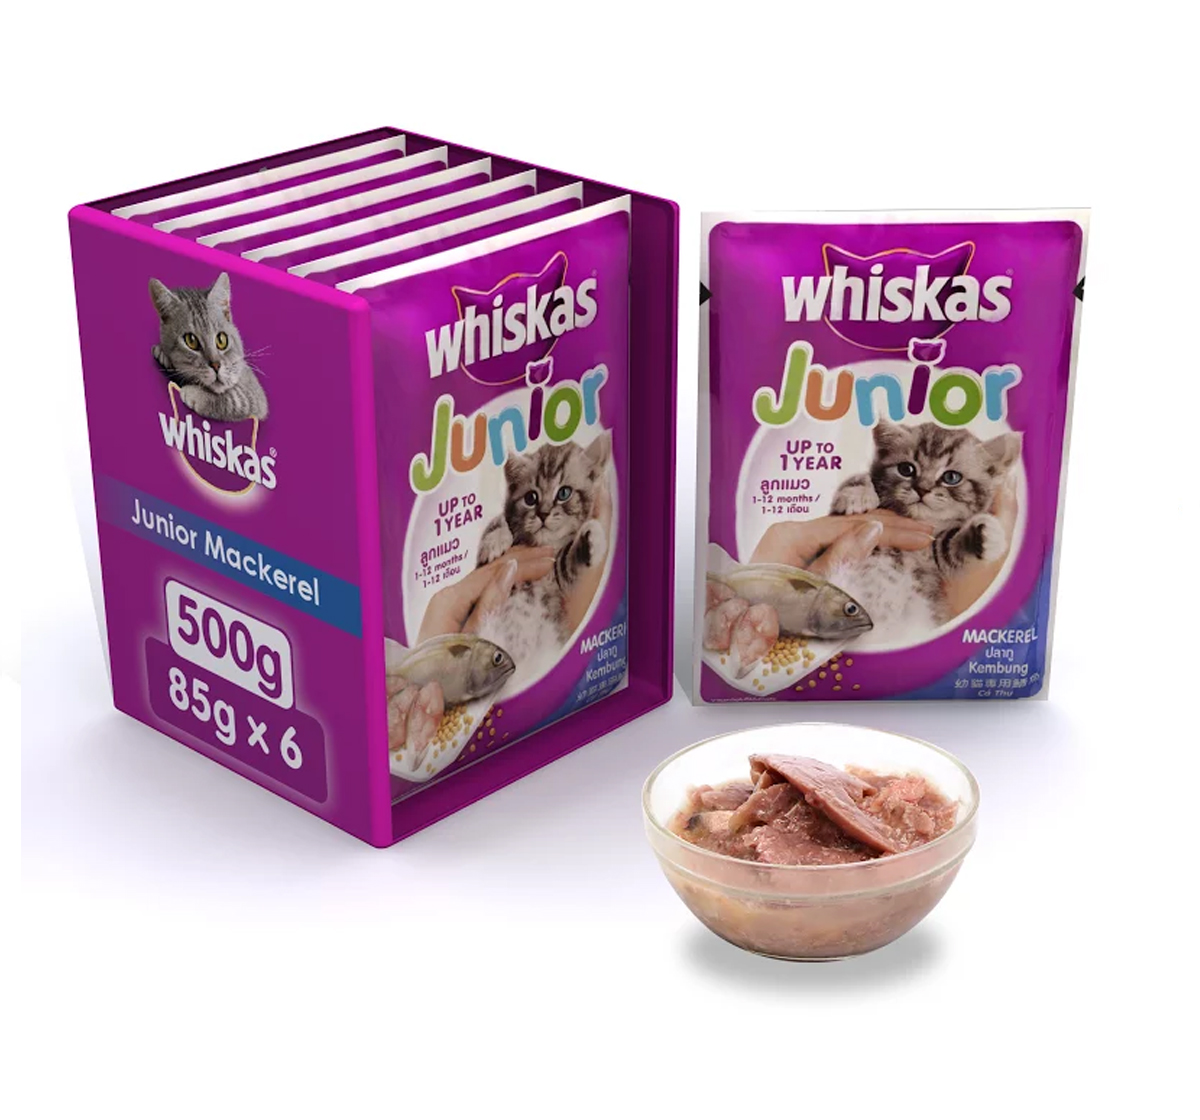 Whiskas Kitten Cat Food Mackerel - 85 gram (Pack Of 6)